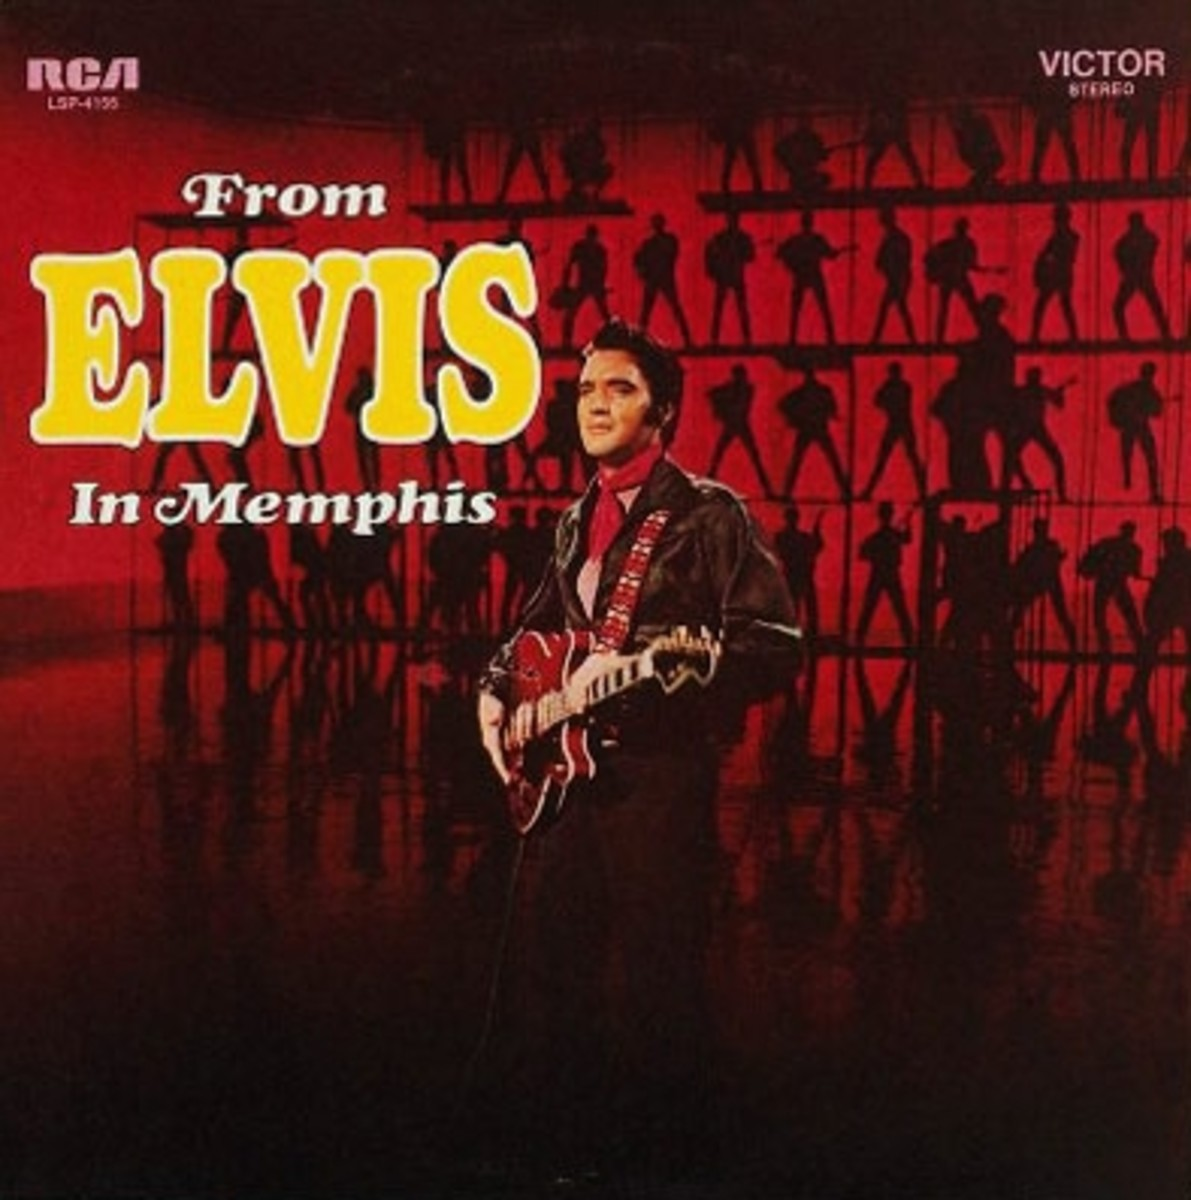 From Elvis in Memphis LP album cover